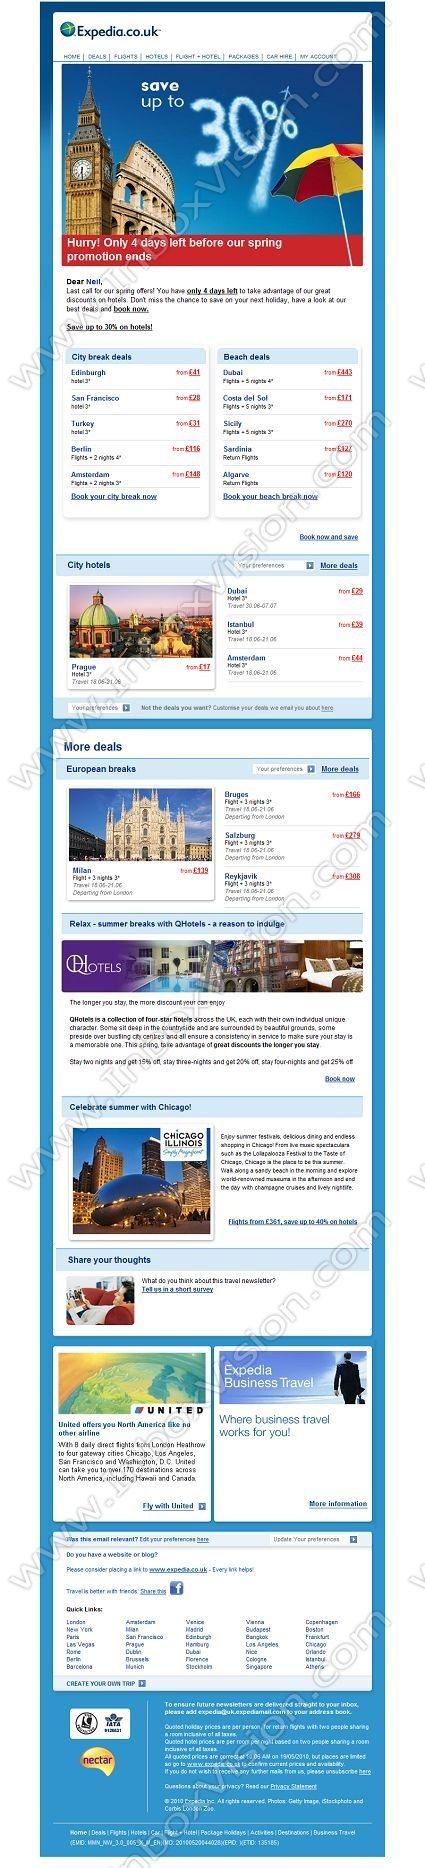 Company:    Expedia.co.uk    Subject:    Only 4 days left to save 30% off hotels             INBOXVISION is a global database and email gallery of 1.5 million B2C and B2B promotional emails and newsletter templates, providing email design ideas and email marketing intelligence http://www.inboxvision.com/blog